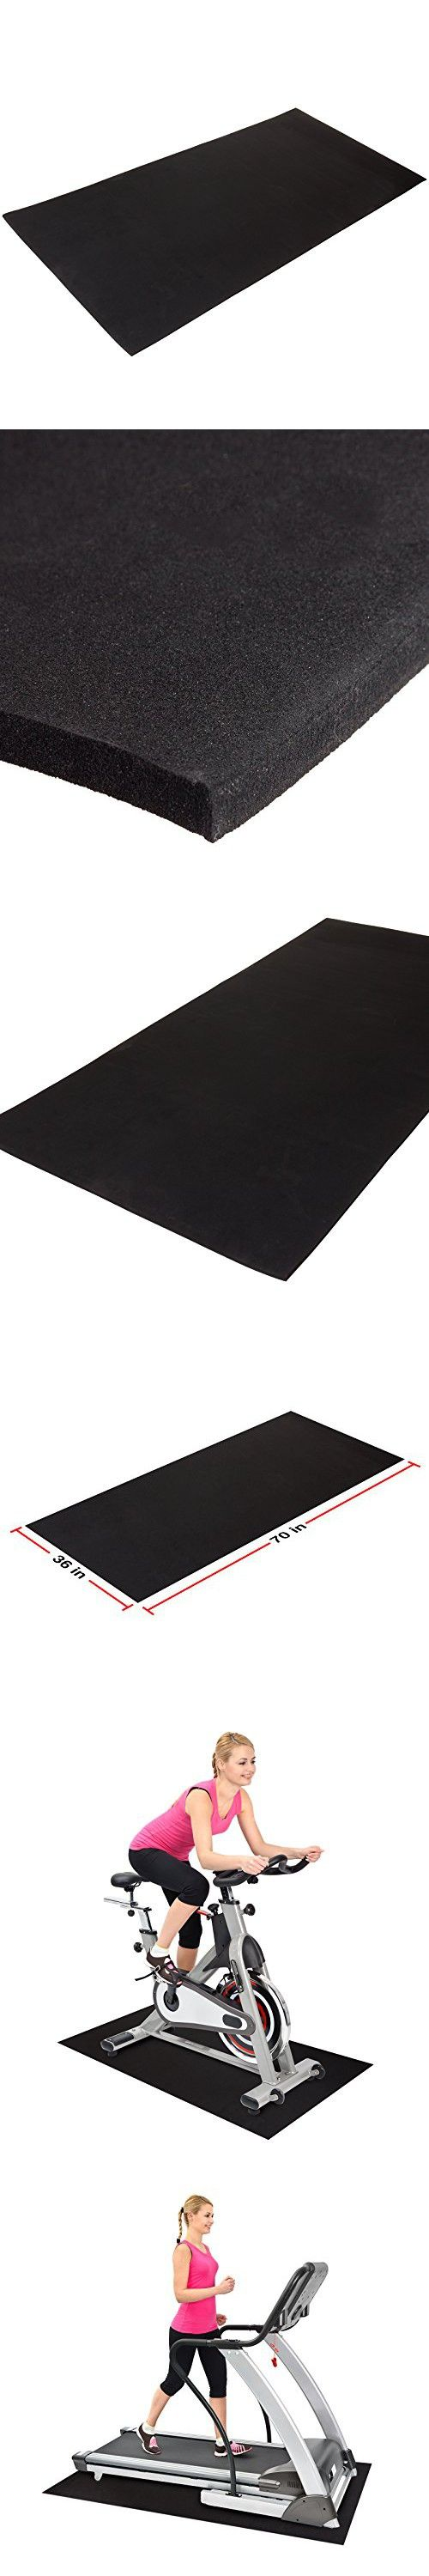 "XCEL Treadmill Mat - 36"" x 70"" x 5/16"" Anti-Fatigue EPDM Closed Cell Rubber Exercise Mat"